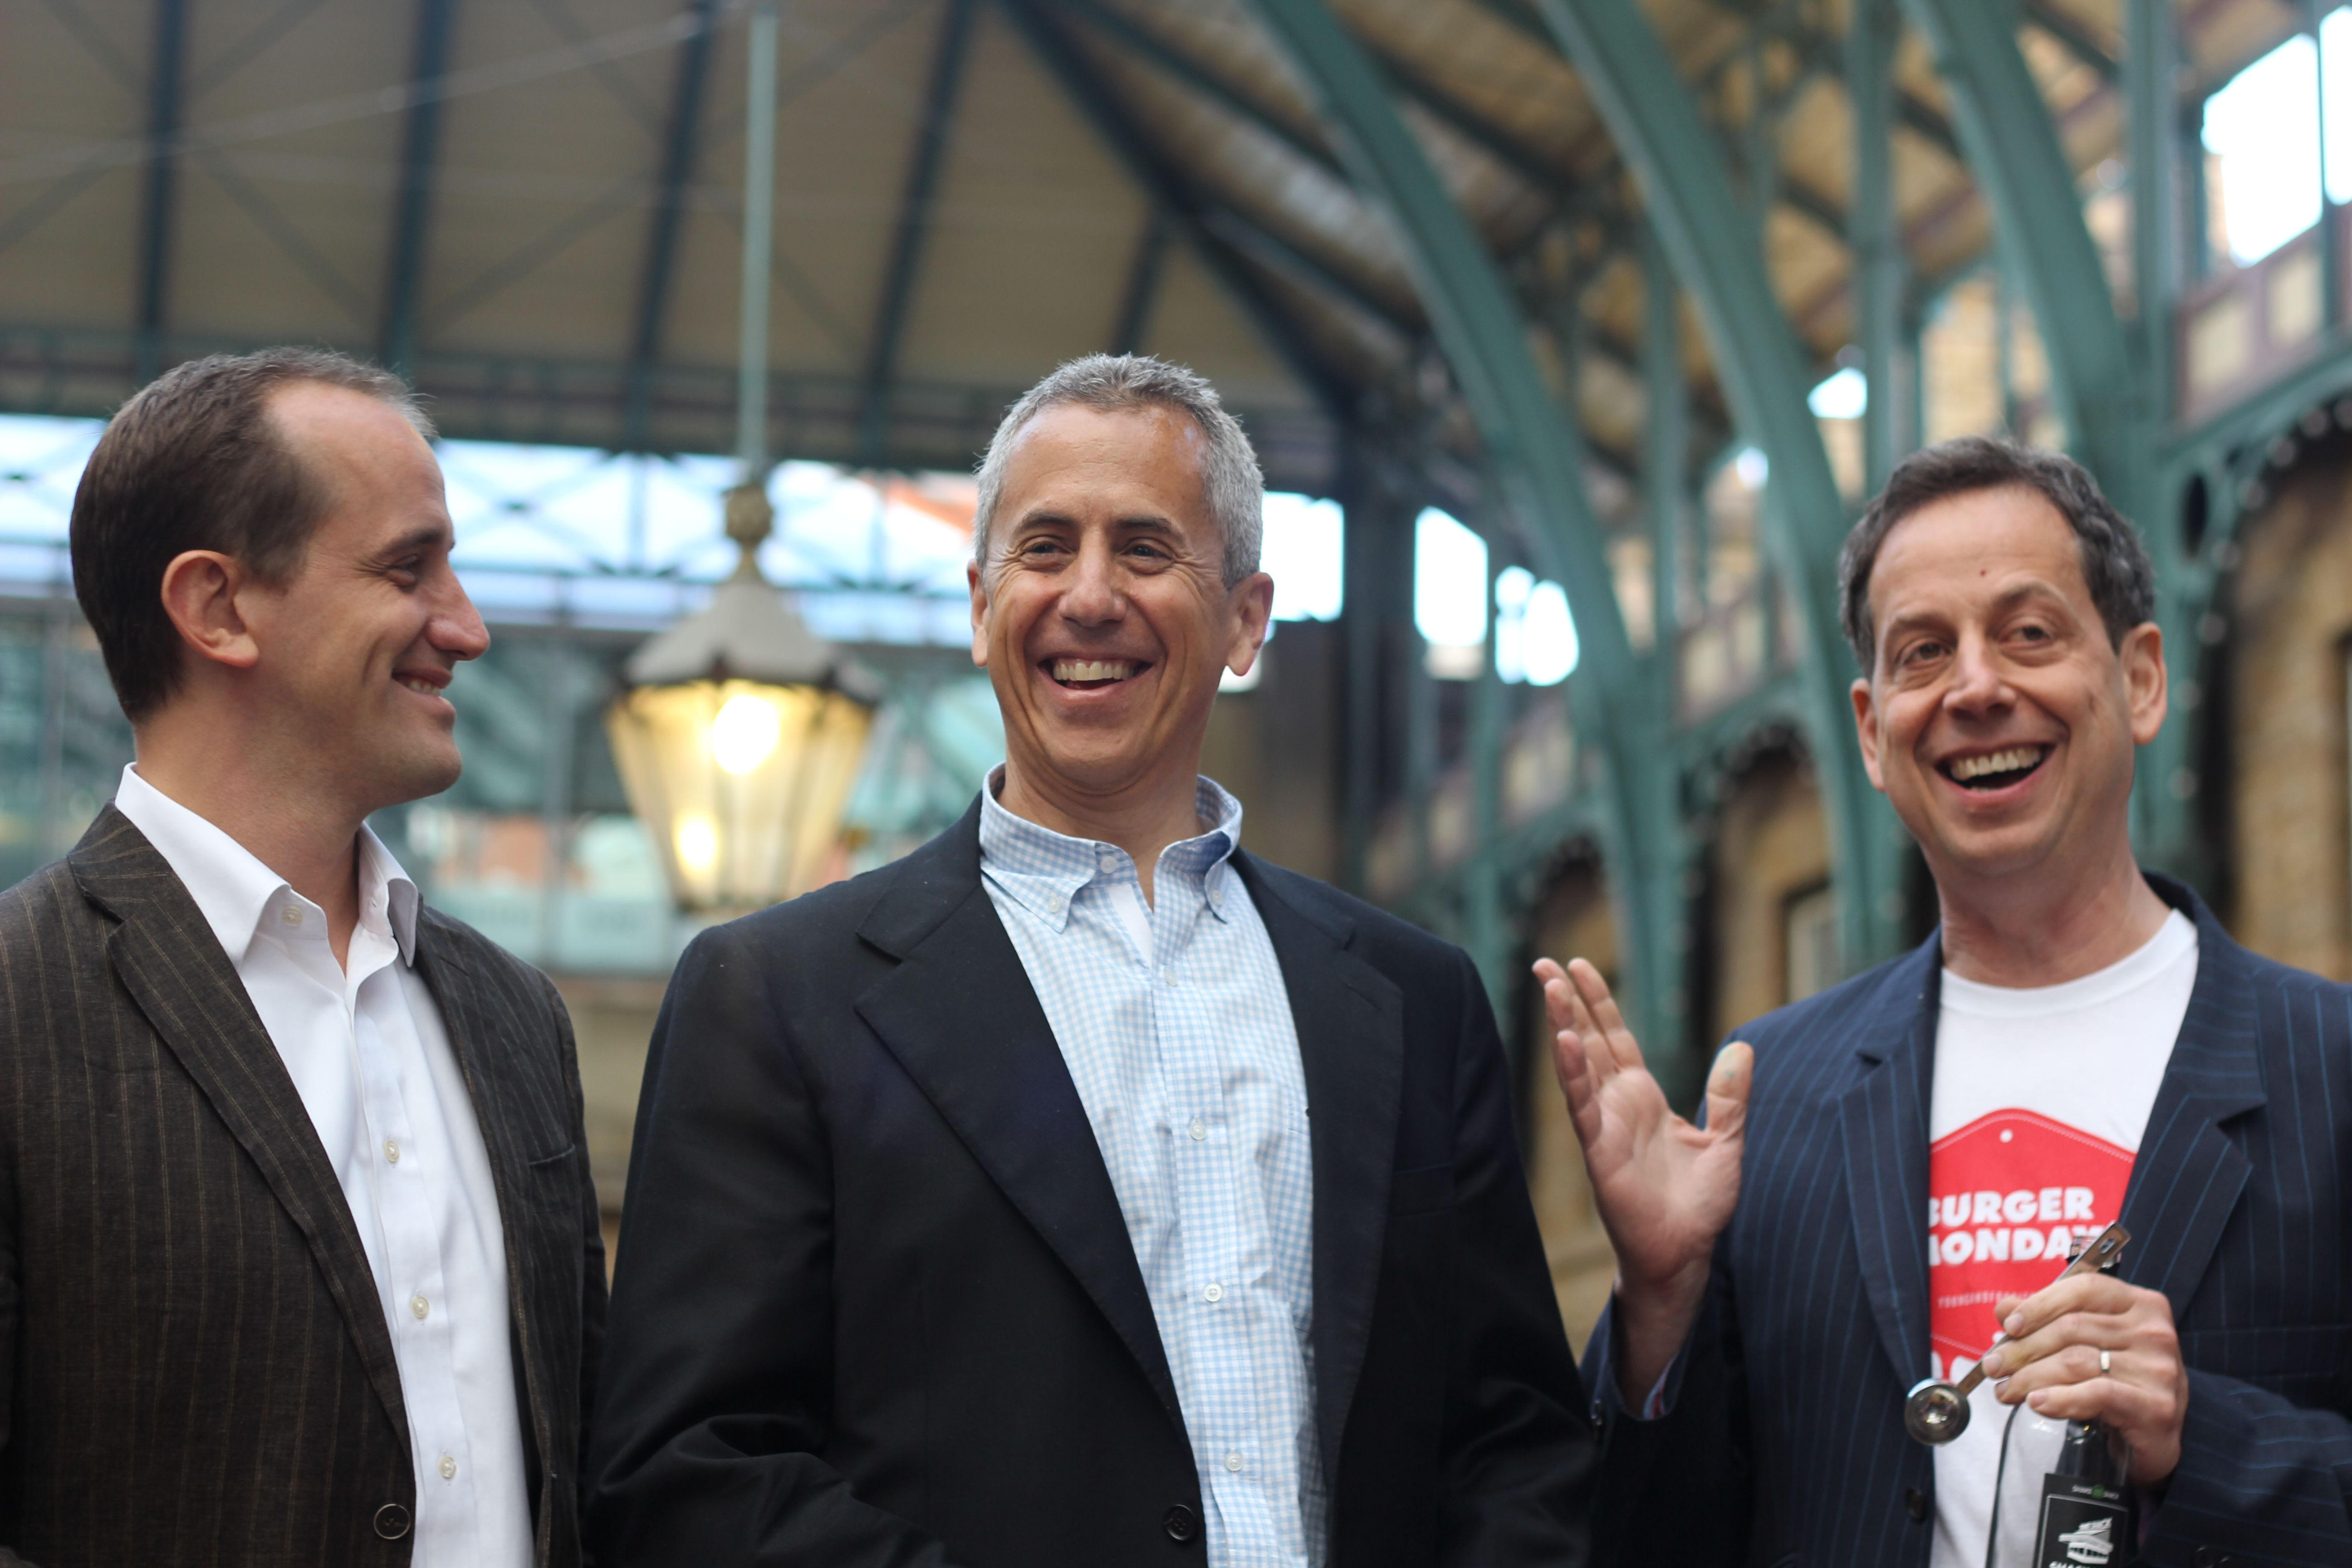 Randy Garutti, CEO of Shake Shack, Danny Meyer, founder & CEO of the Union Hospitality Group (& therefore Shack Shack) and  Daniel Young of Burger Monday and Young & Foodish